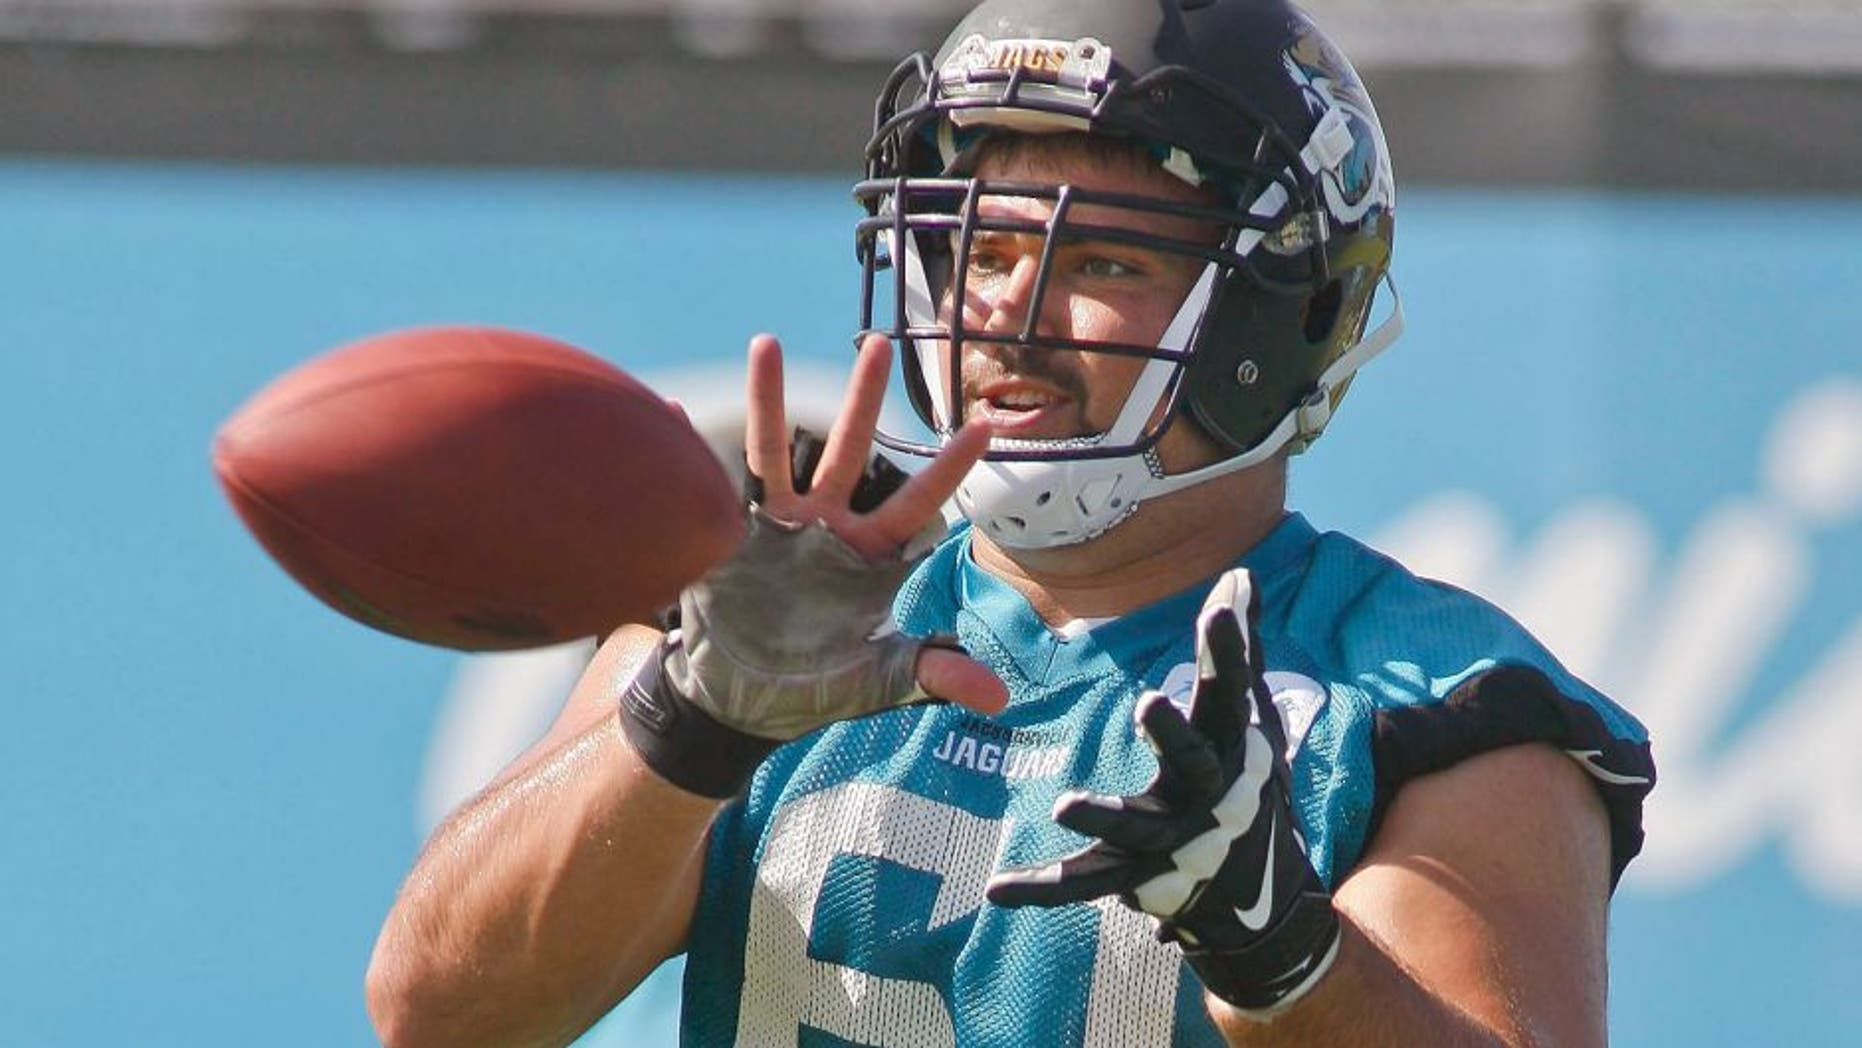 Jun 16, 2015; Jacksonville, FL, USA; Jacksonville Jaguars center Stefen Wisniewski (61) catches the ball during minicamp at the Florida Blue Health and Wellness Practice Fields. Mandatory Credit: Phil Sears-USA TODAY Sports